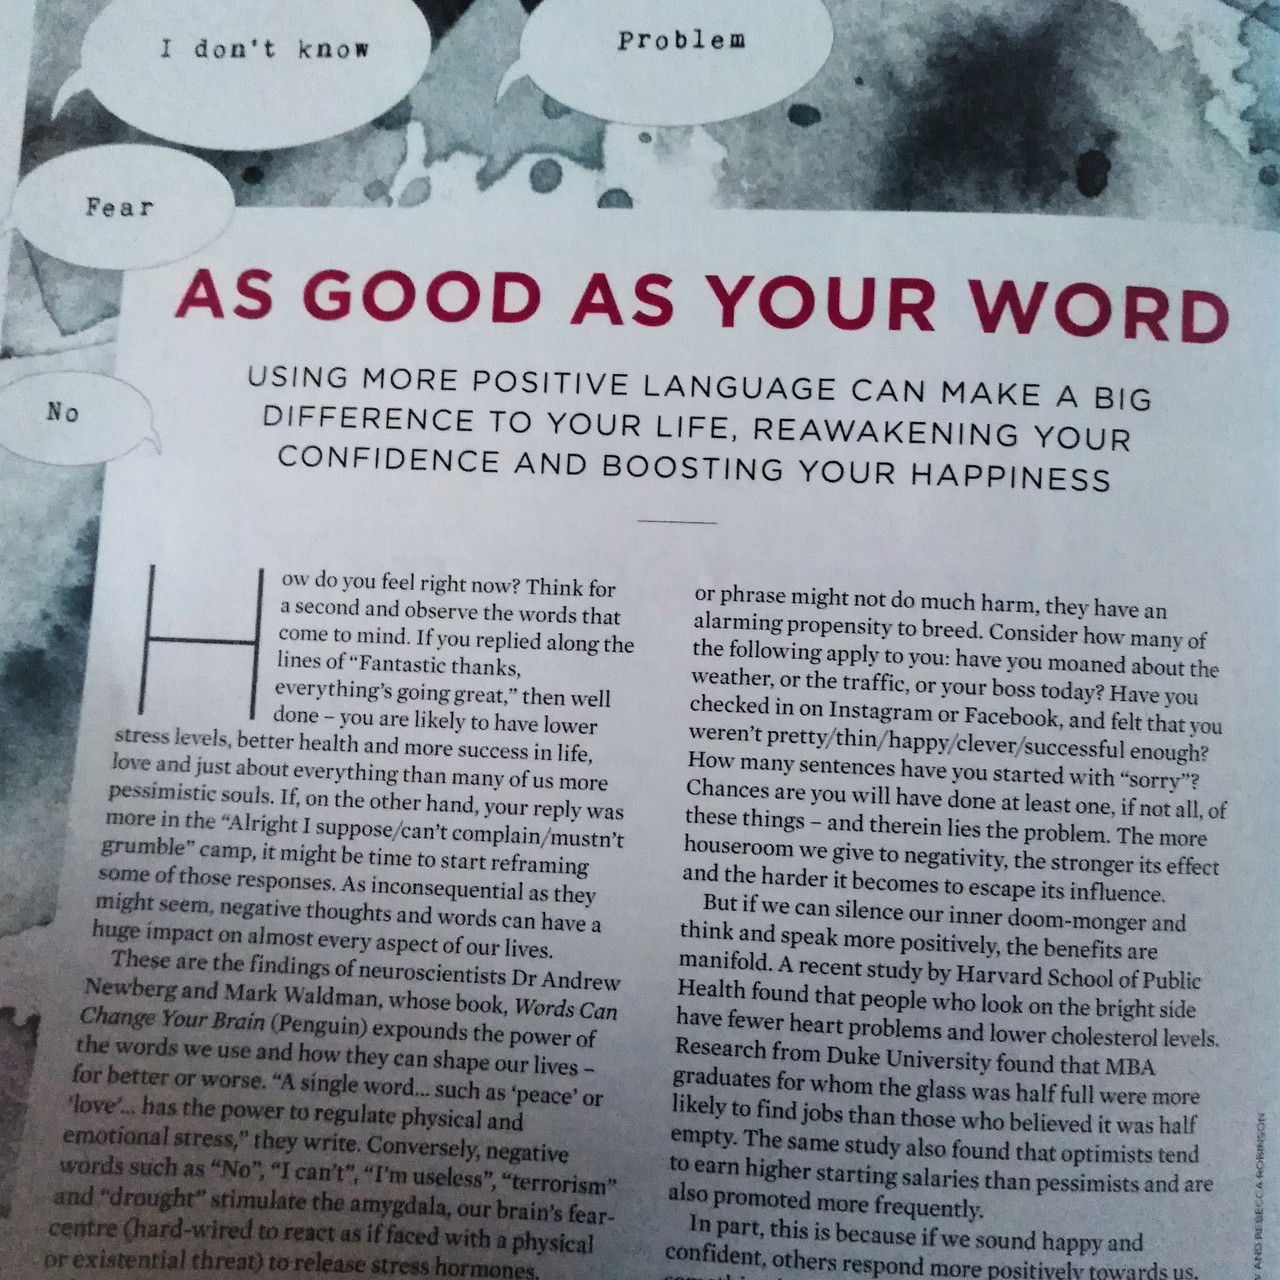 AS GOOD AS YOUR WORD ARTICLE